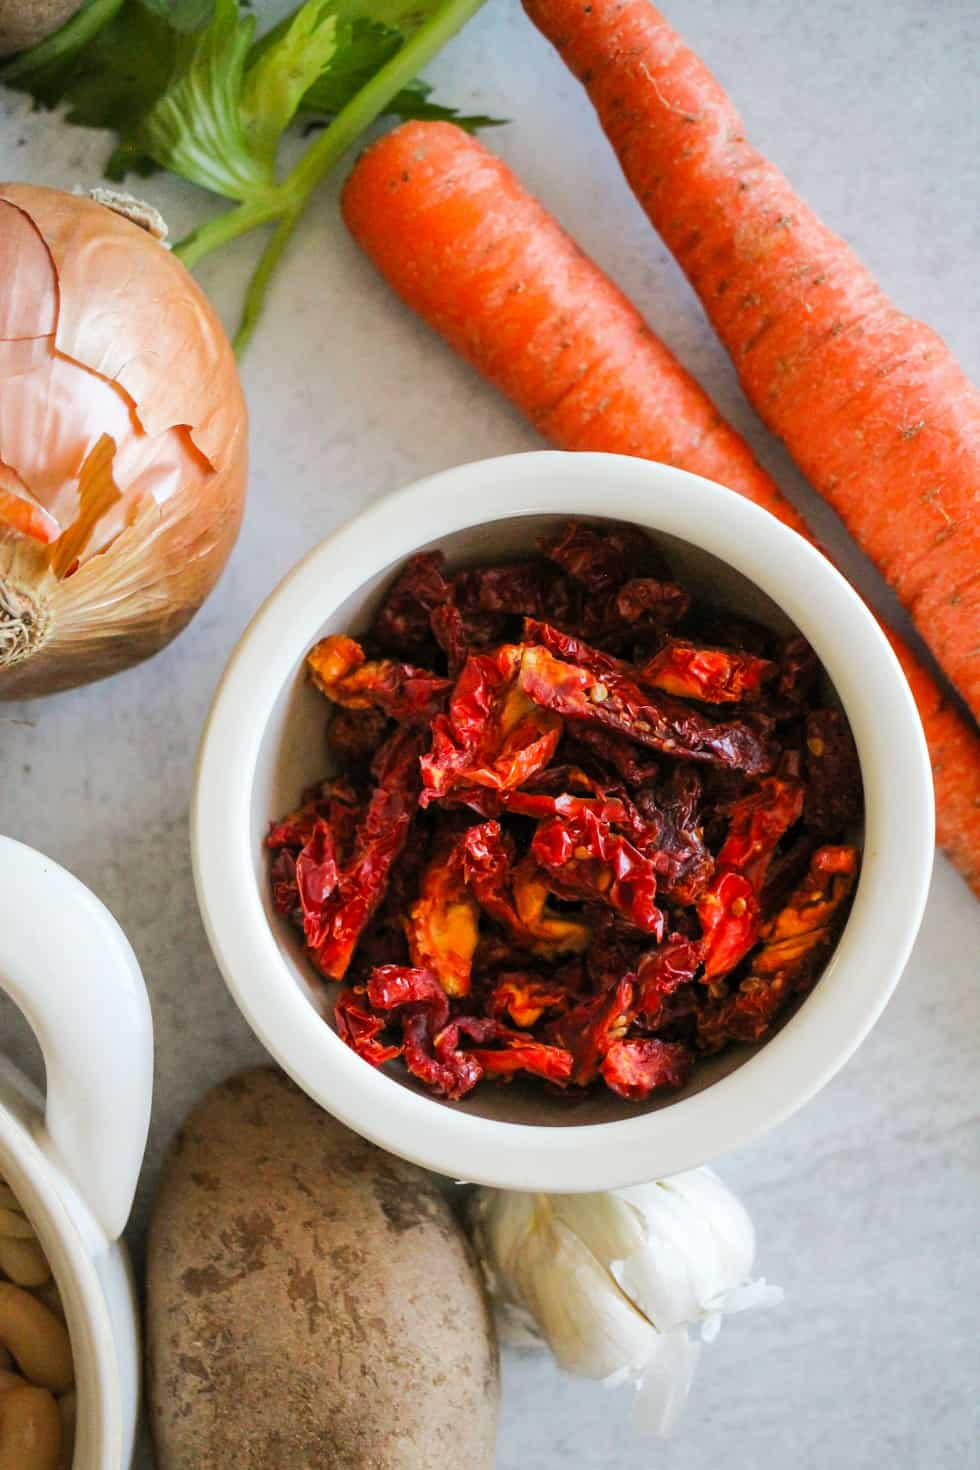 Bowl of sun-dried tomatoes with carrots, onion, and potato